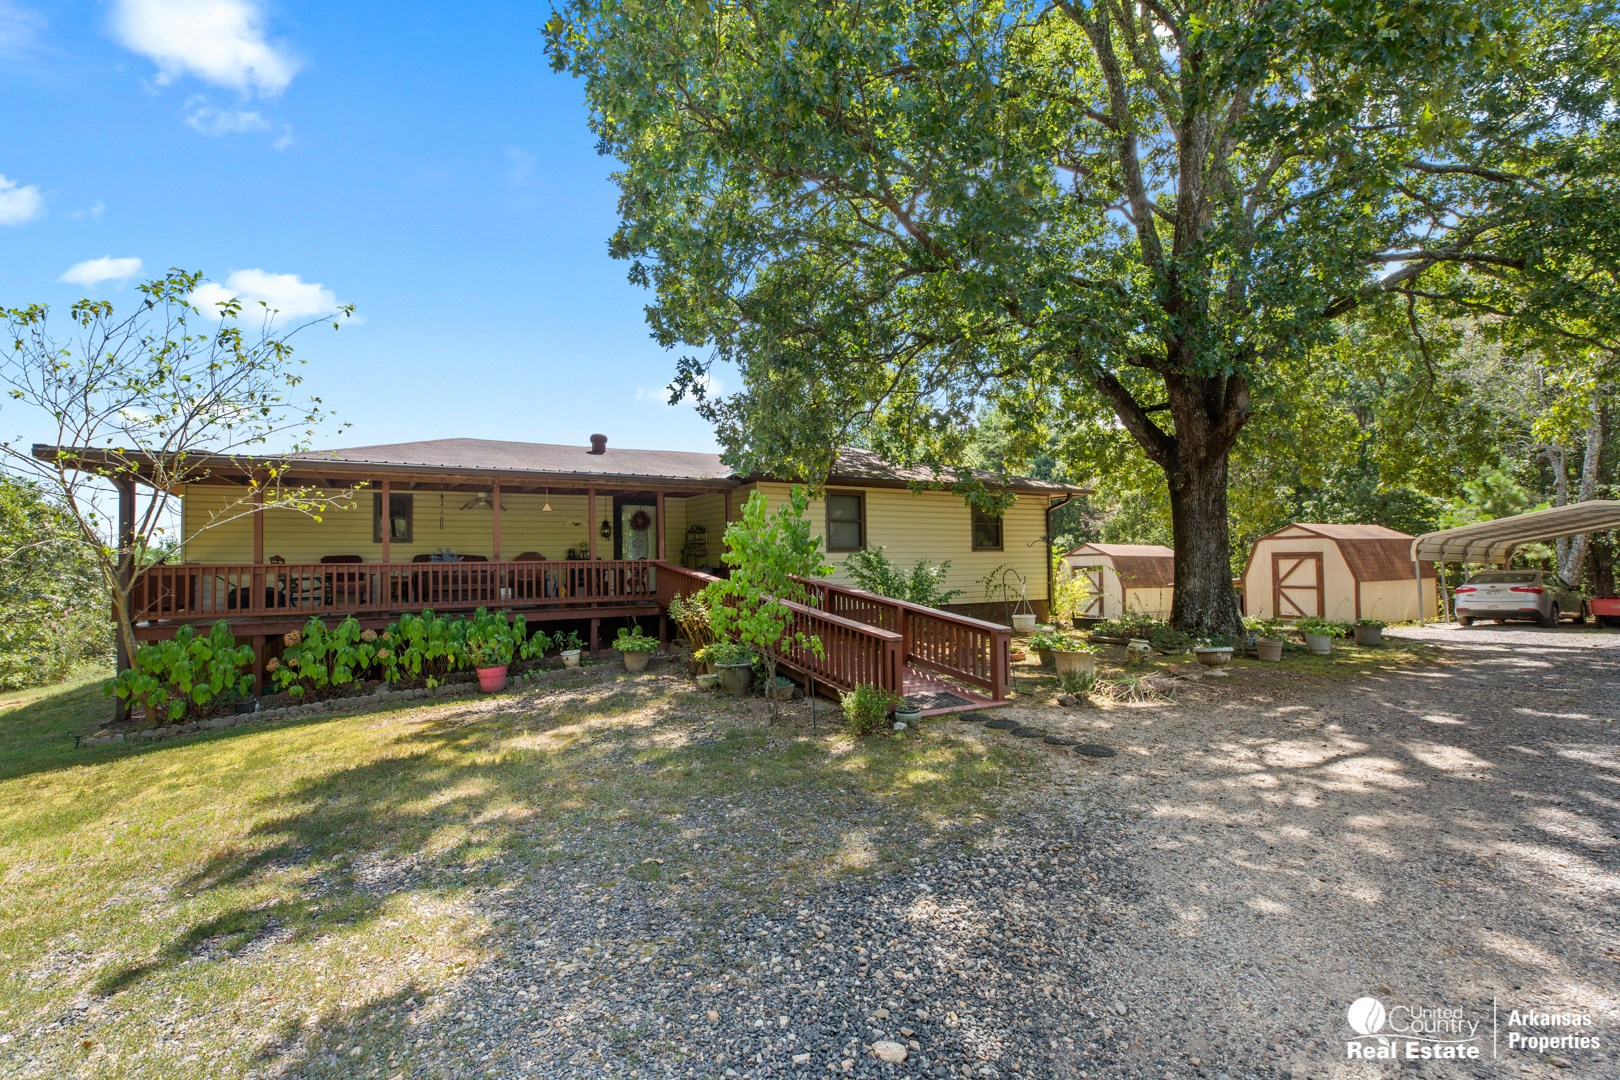 Home with acreage in town!